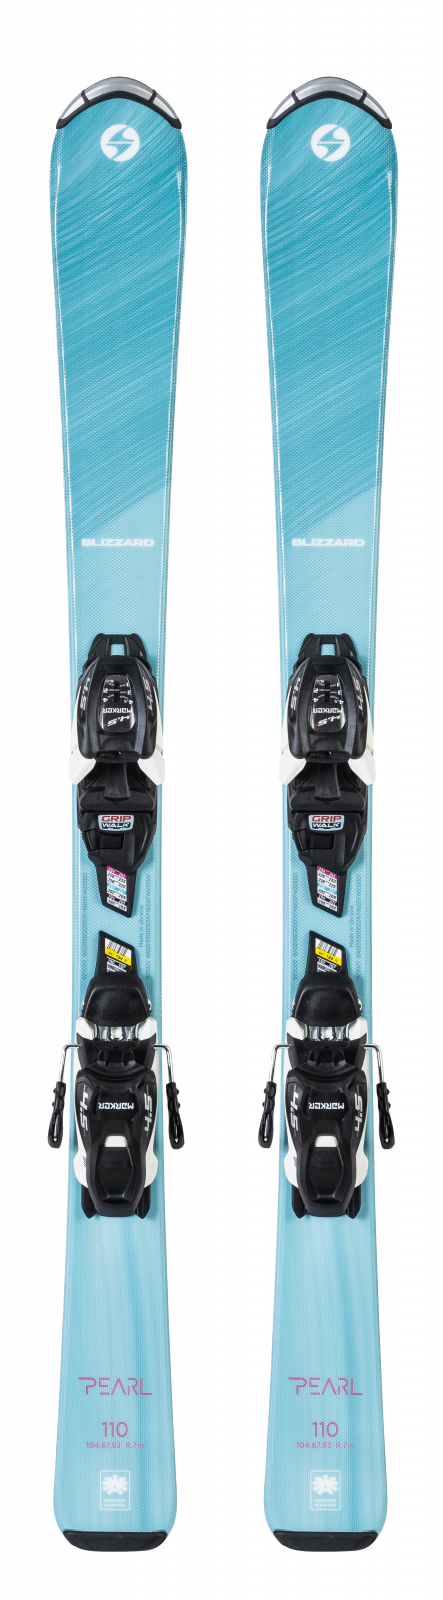 2022 Blizzard Pearl Jr Youth Skis w/ Marker FDT 4.5 Bindings